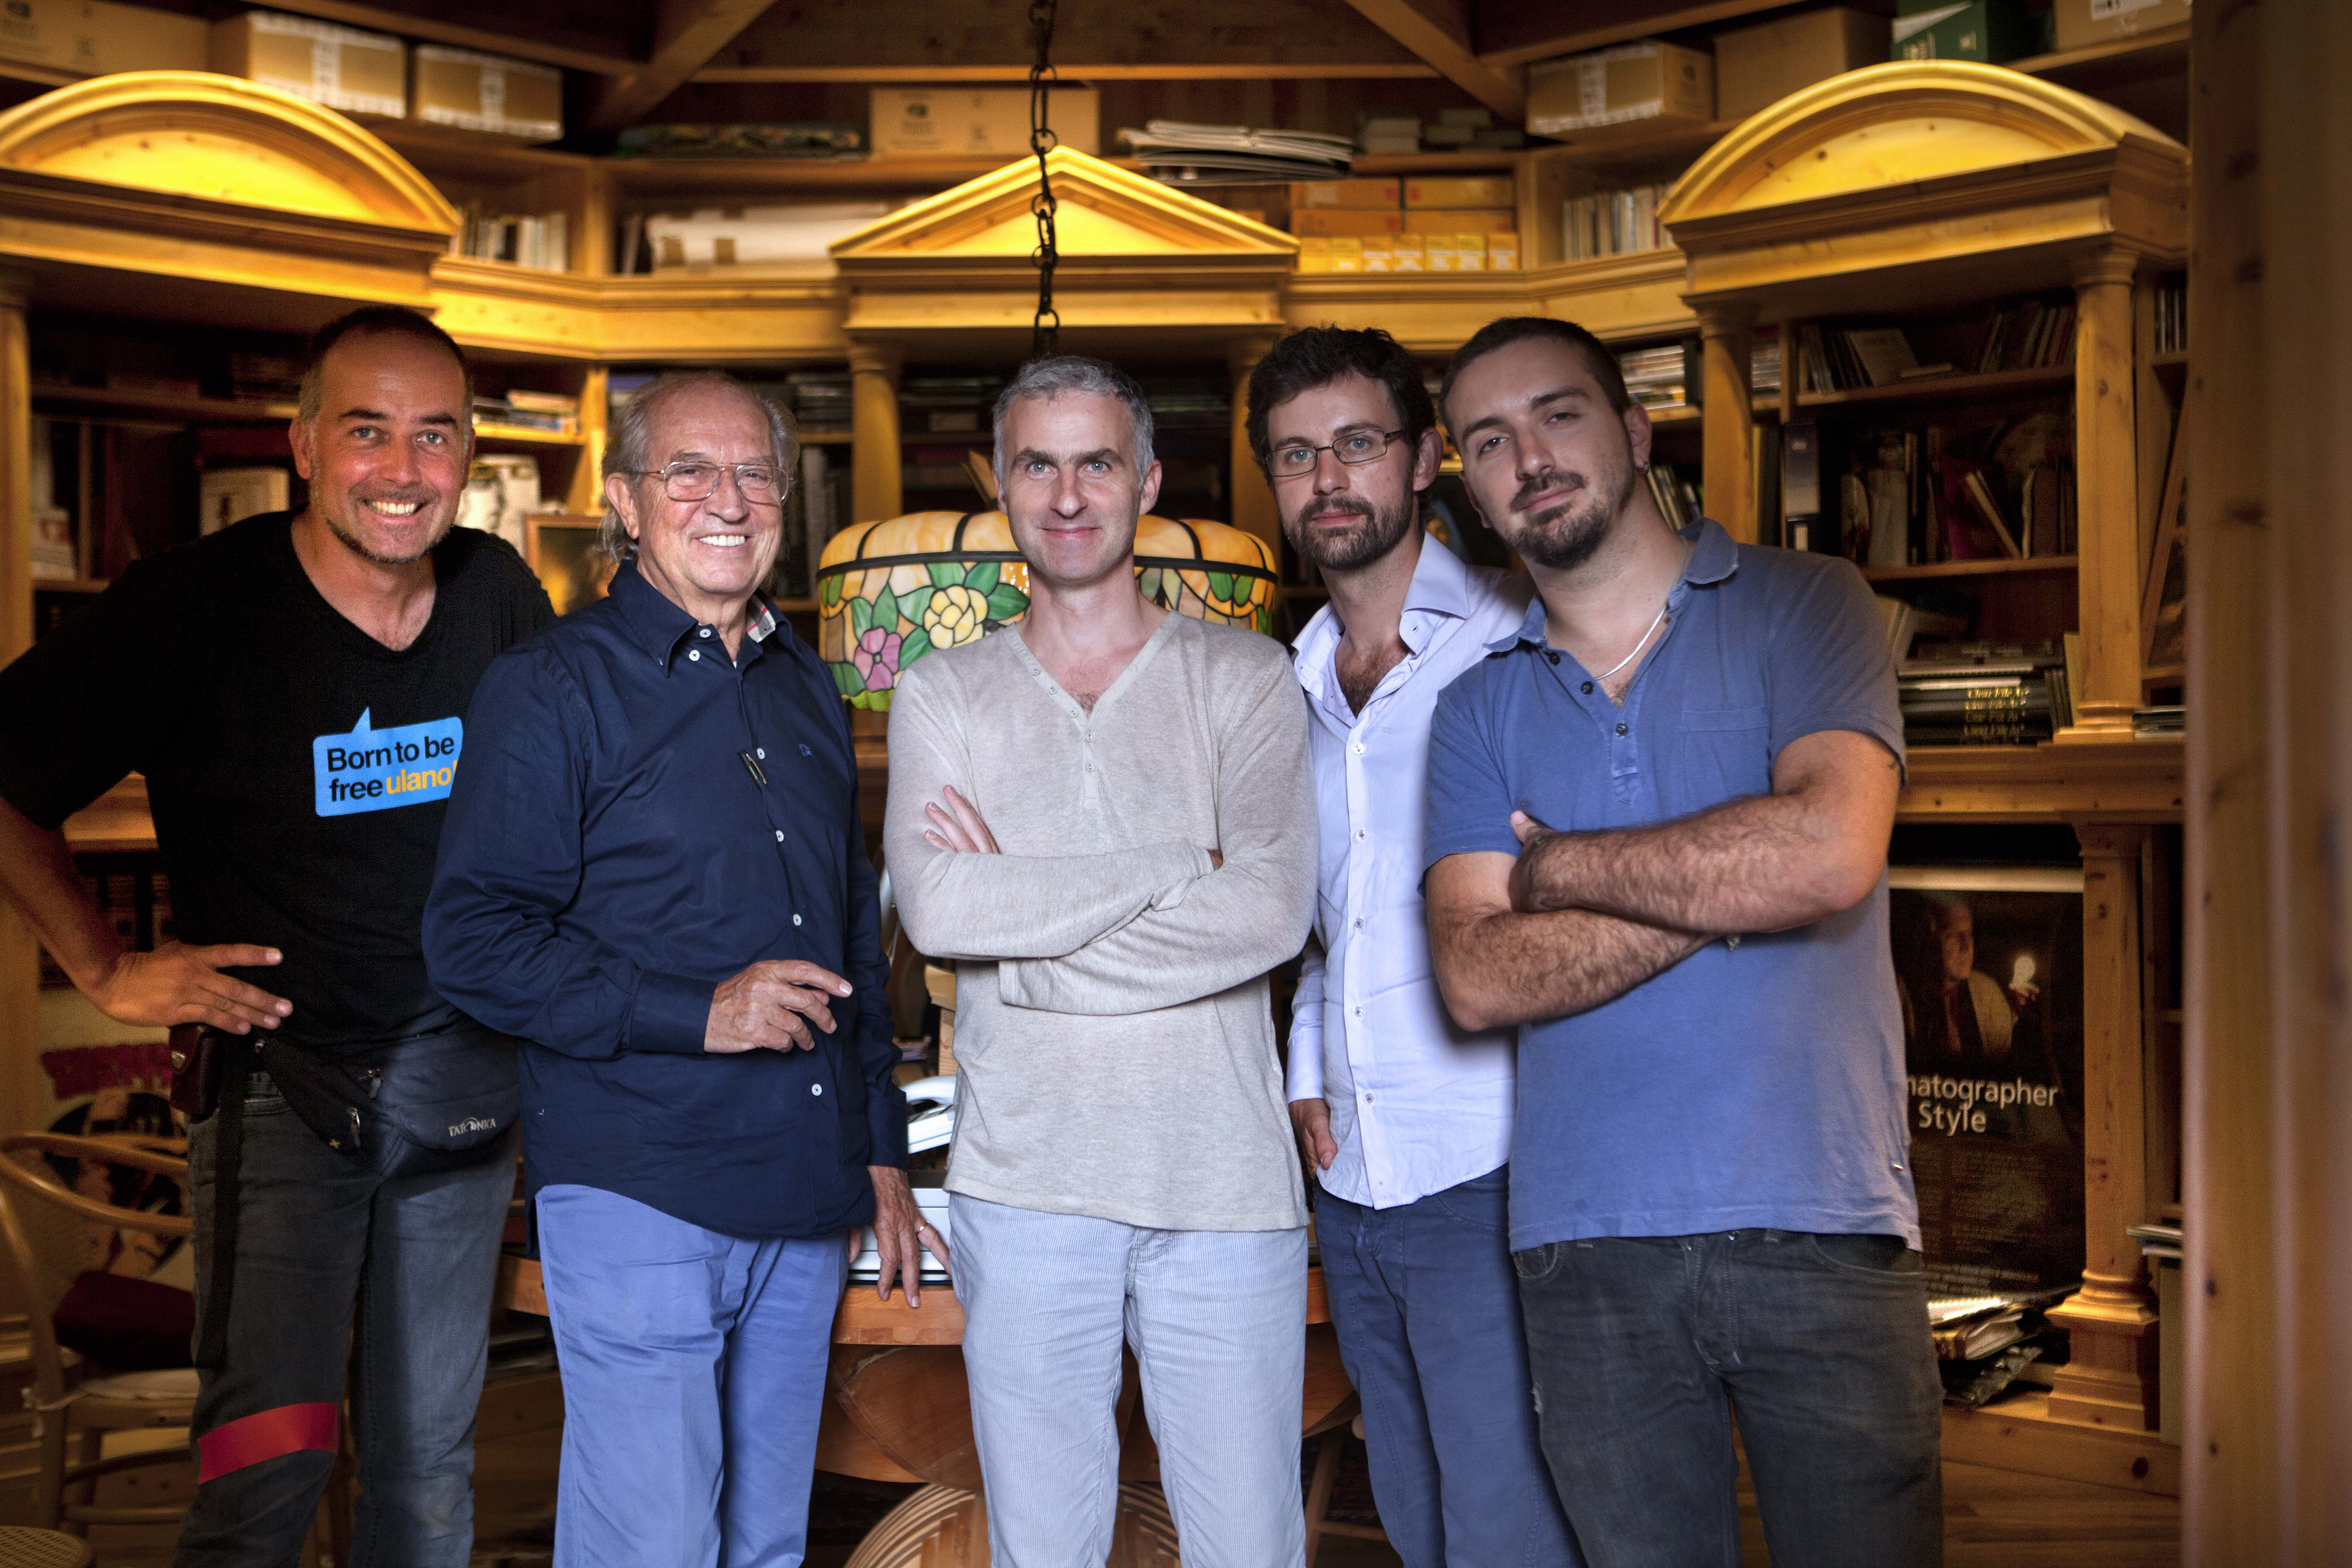 Filmon (center) with his second Italian crew — including Luca Cousin, AIC (on far left) — and subject Vittorio Storaro, ASC, AIC (second from left). Photo by Marta Cavicchioni